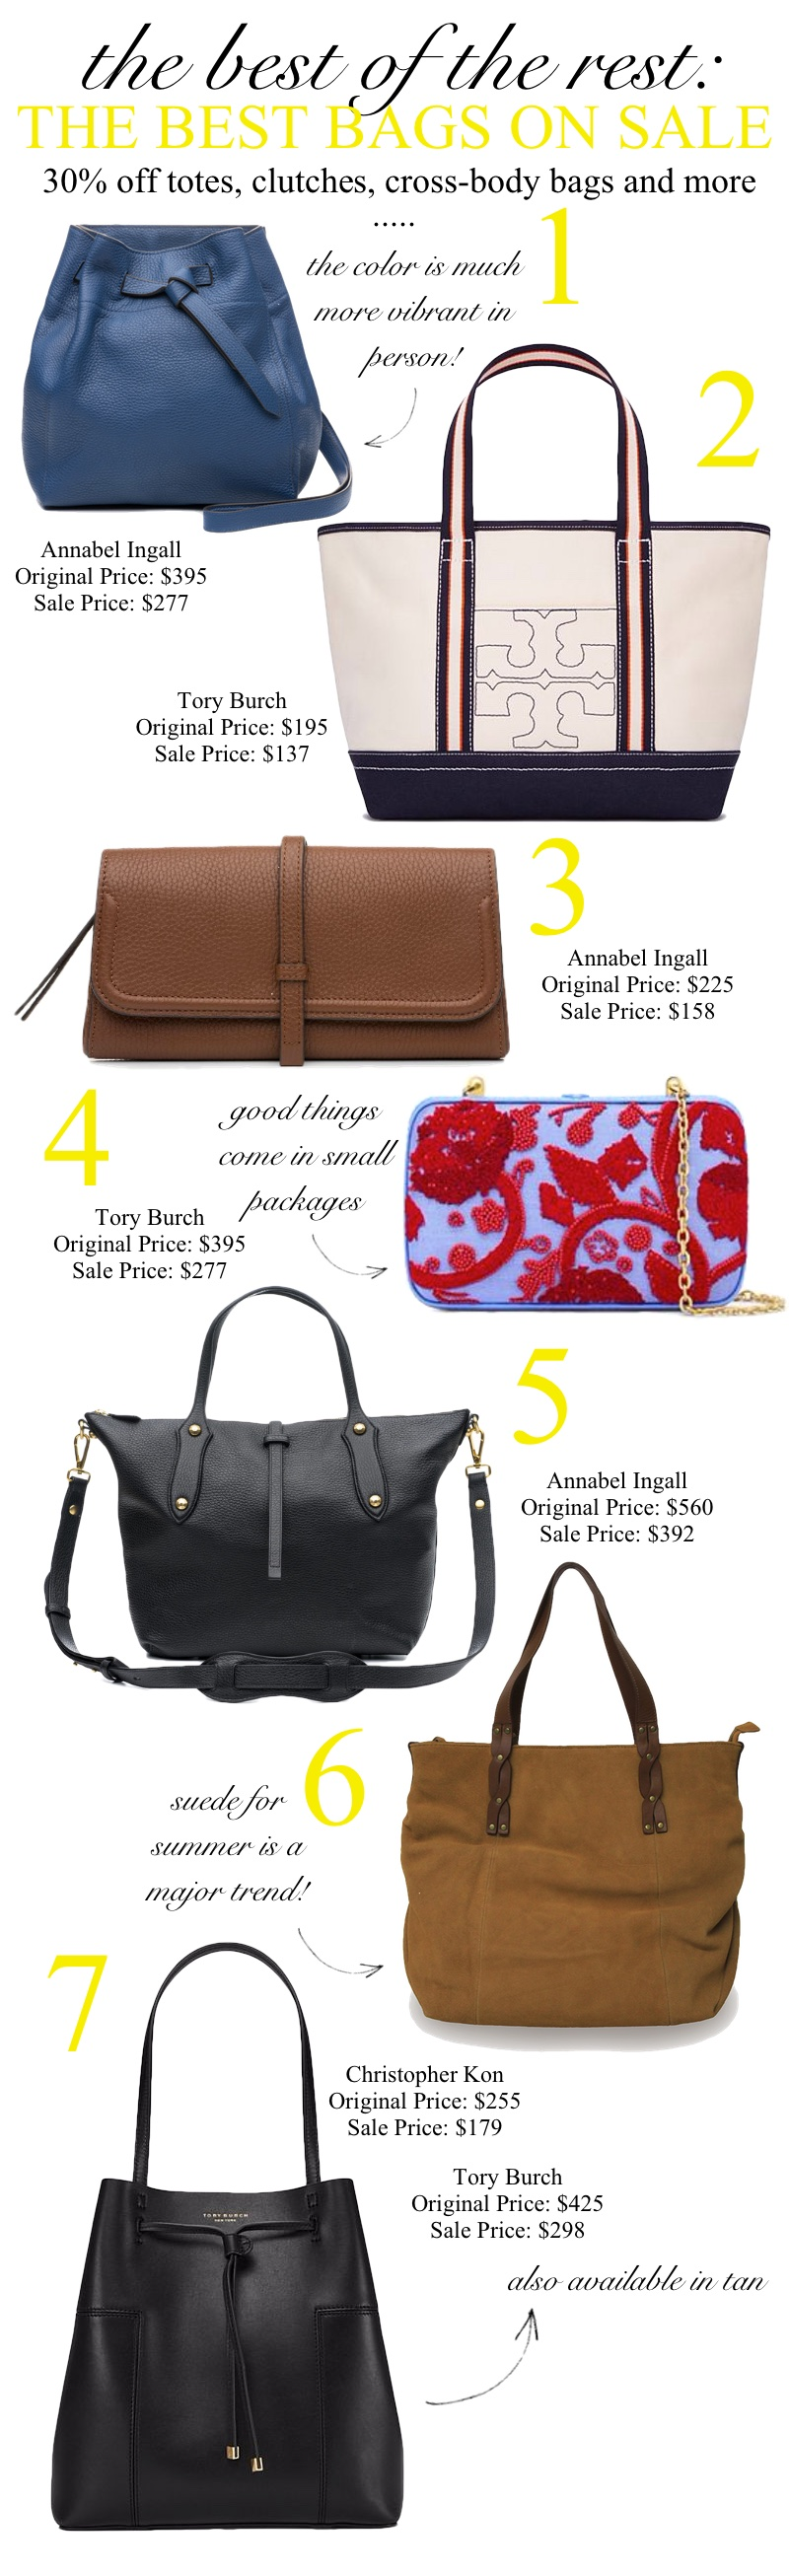 The Best Bags on Sale